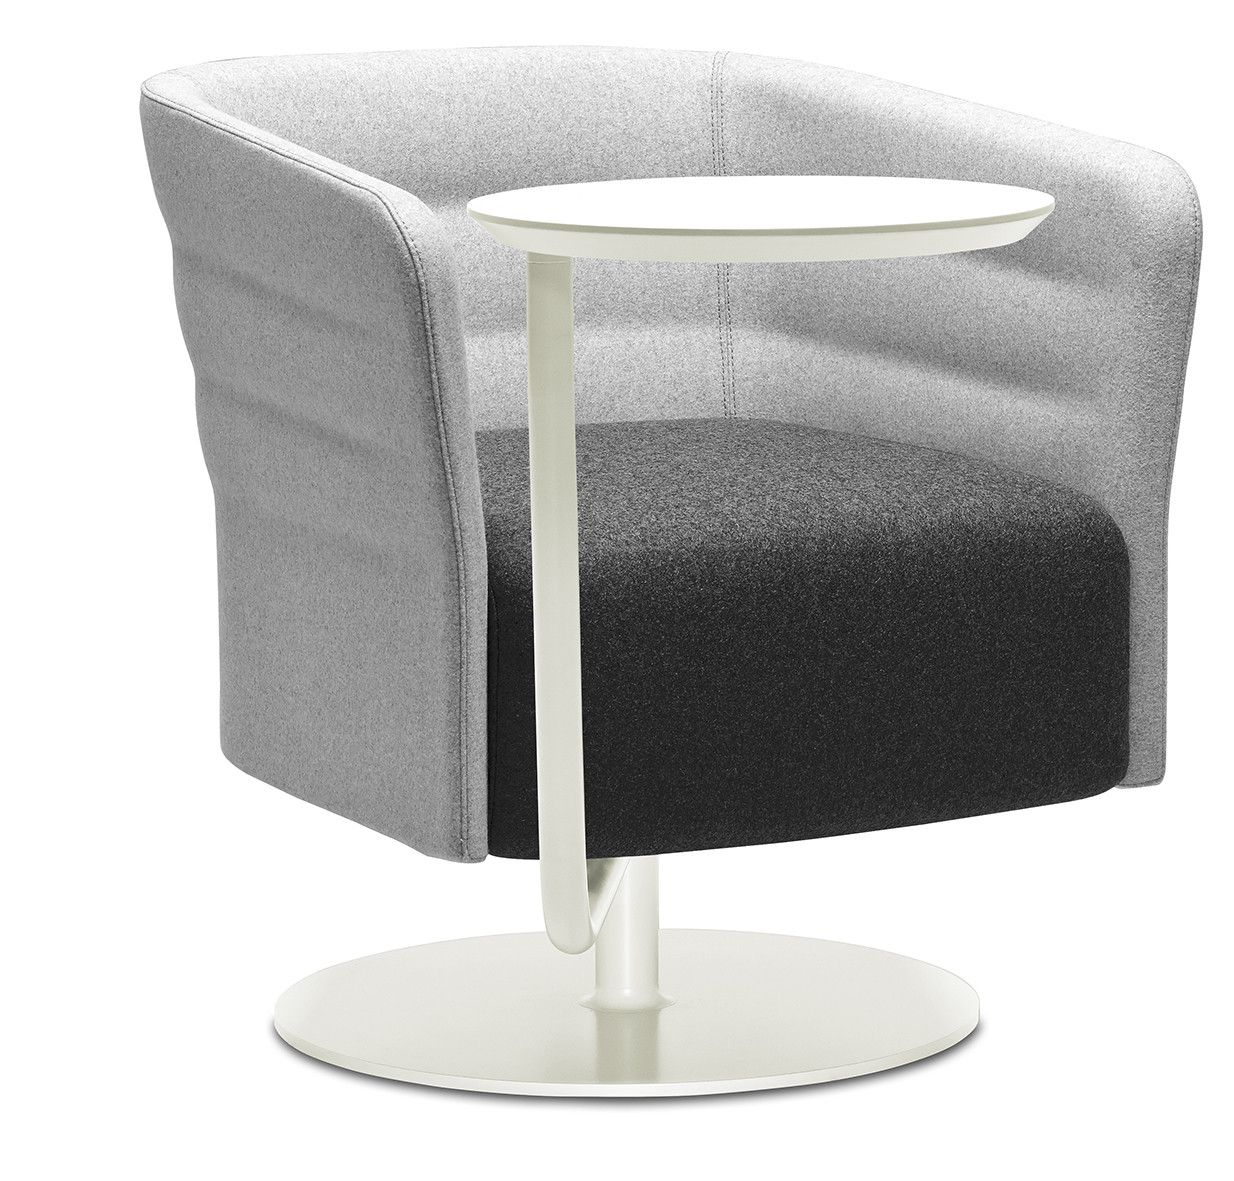 Fauteuil Cell 72 lounge met draaibare ronde witte voet